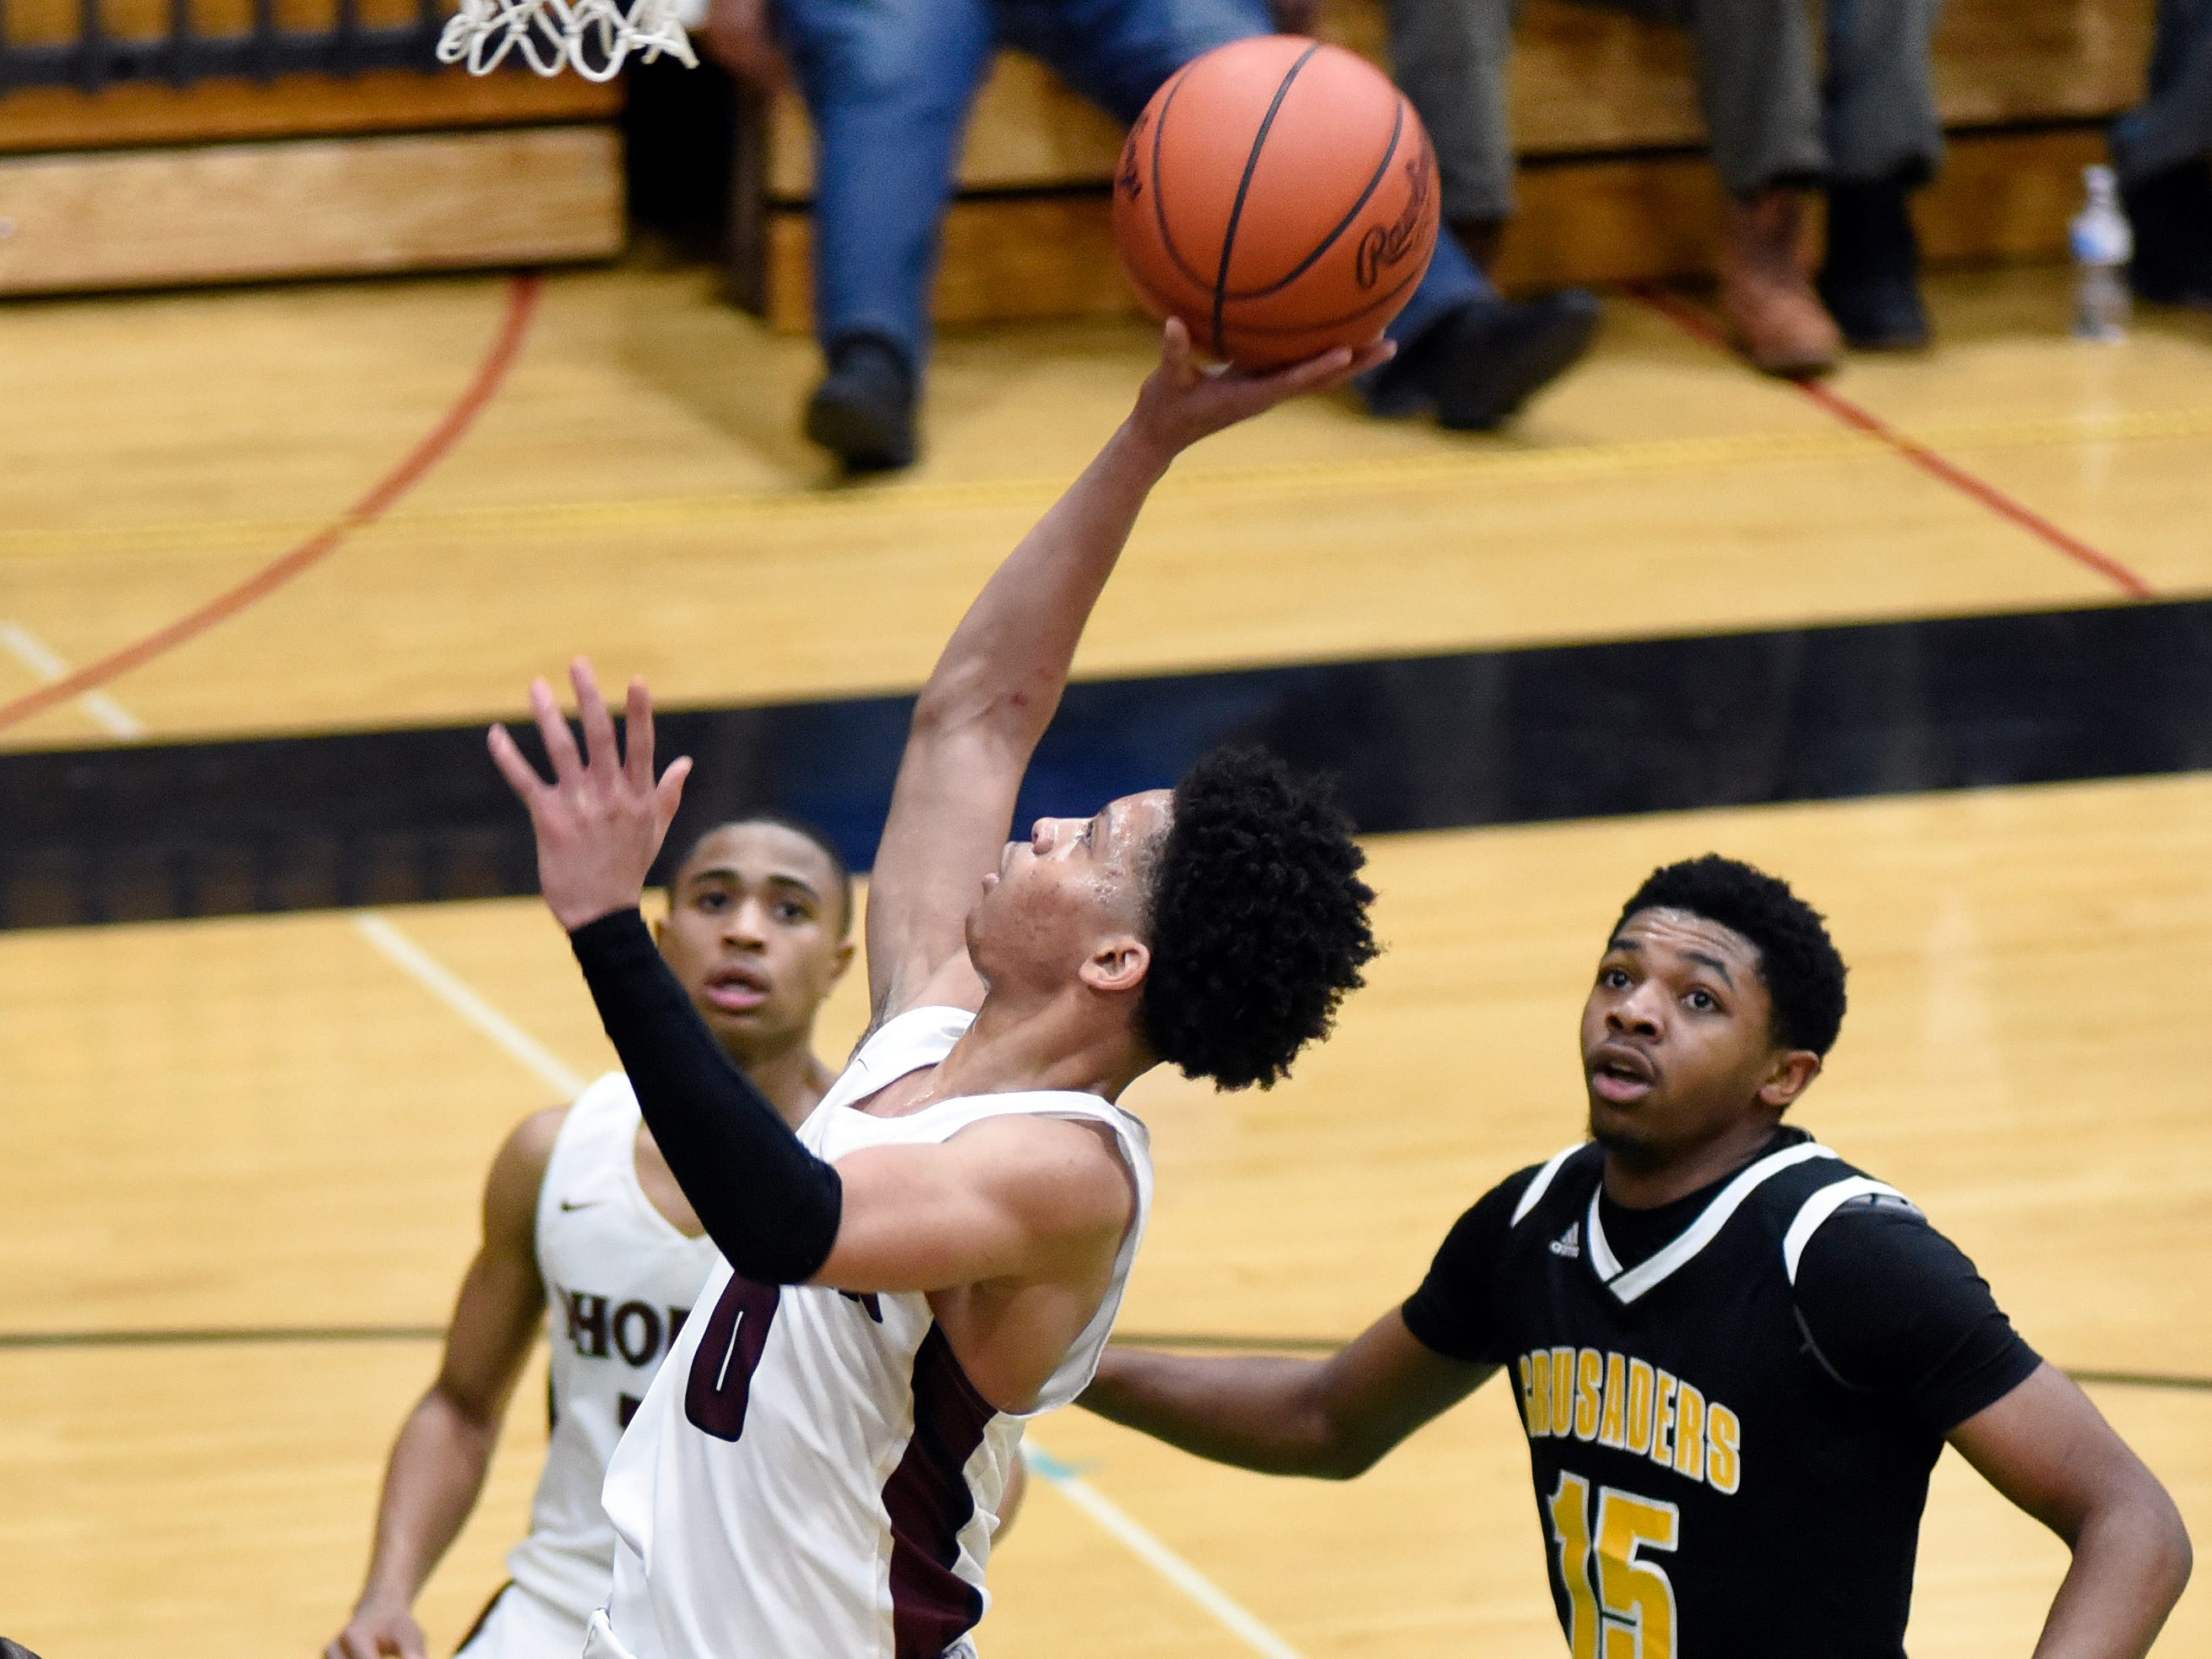 Detroit Renaissance's Keon Henderson (0) goes up for a basket against Detroit King during the fourth quarter.